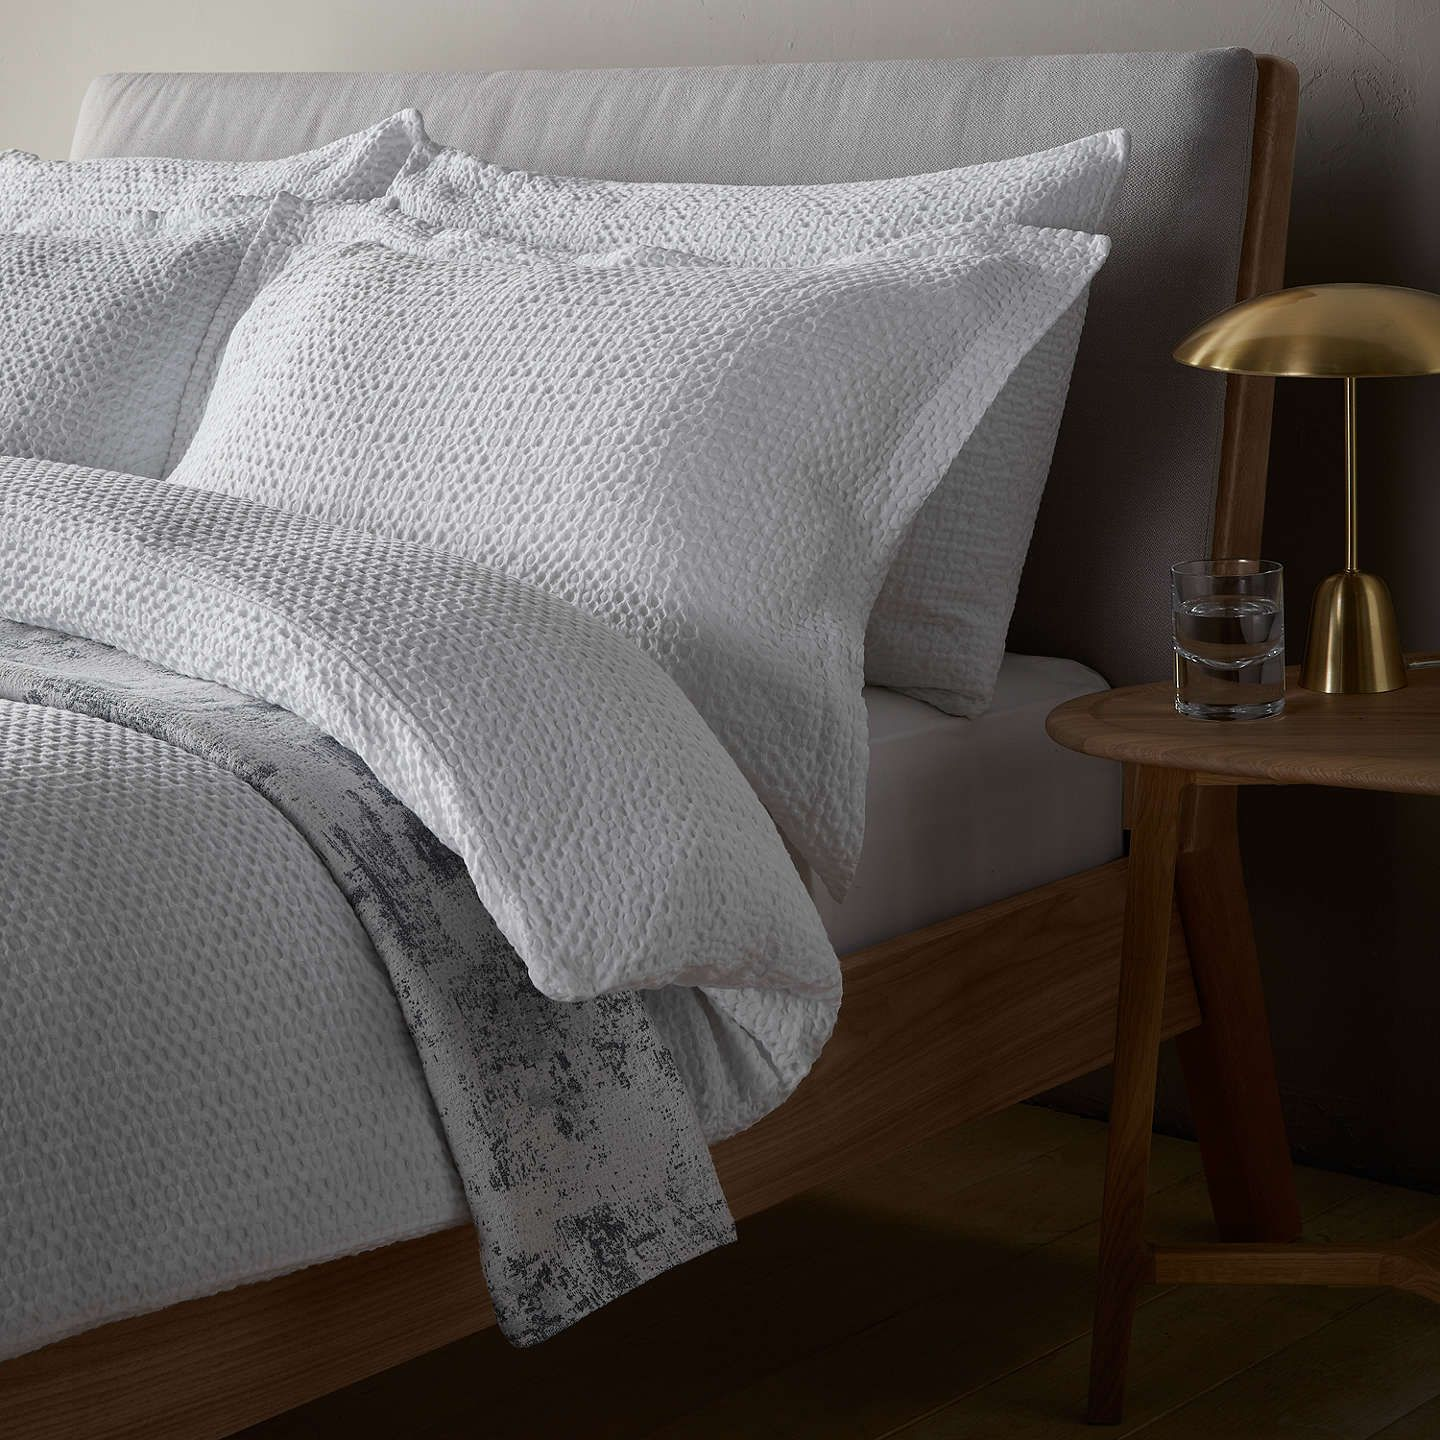 BuyDesign Project by John Lewis No.143 Standard Pillowcase